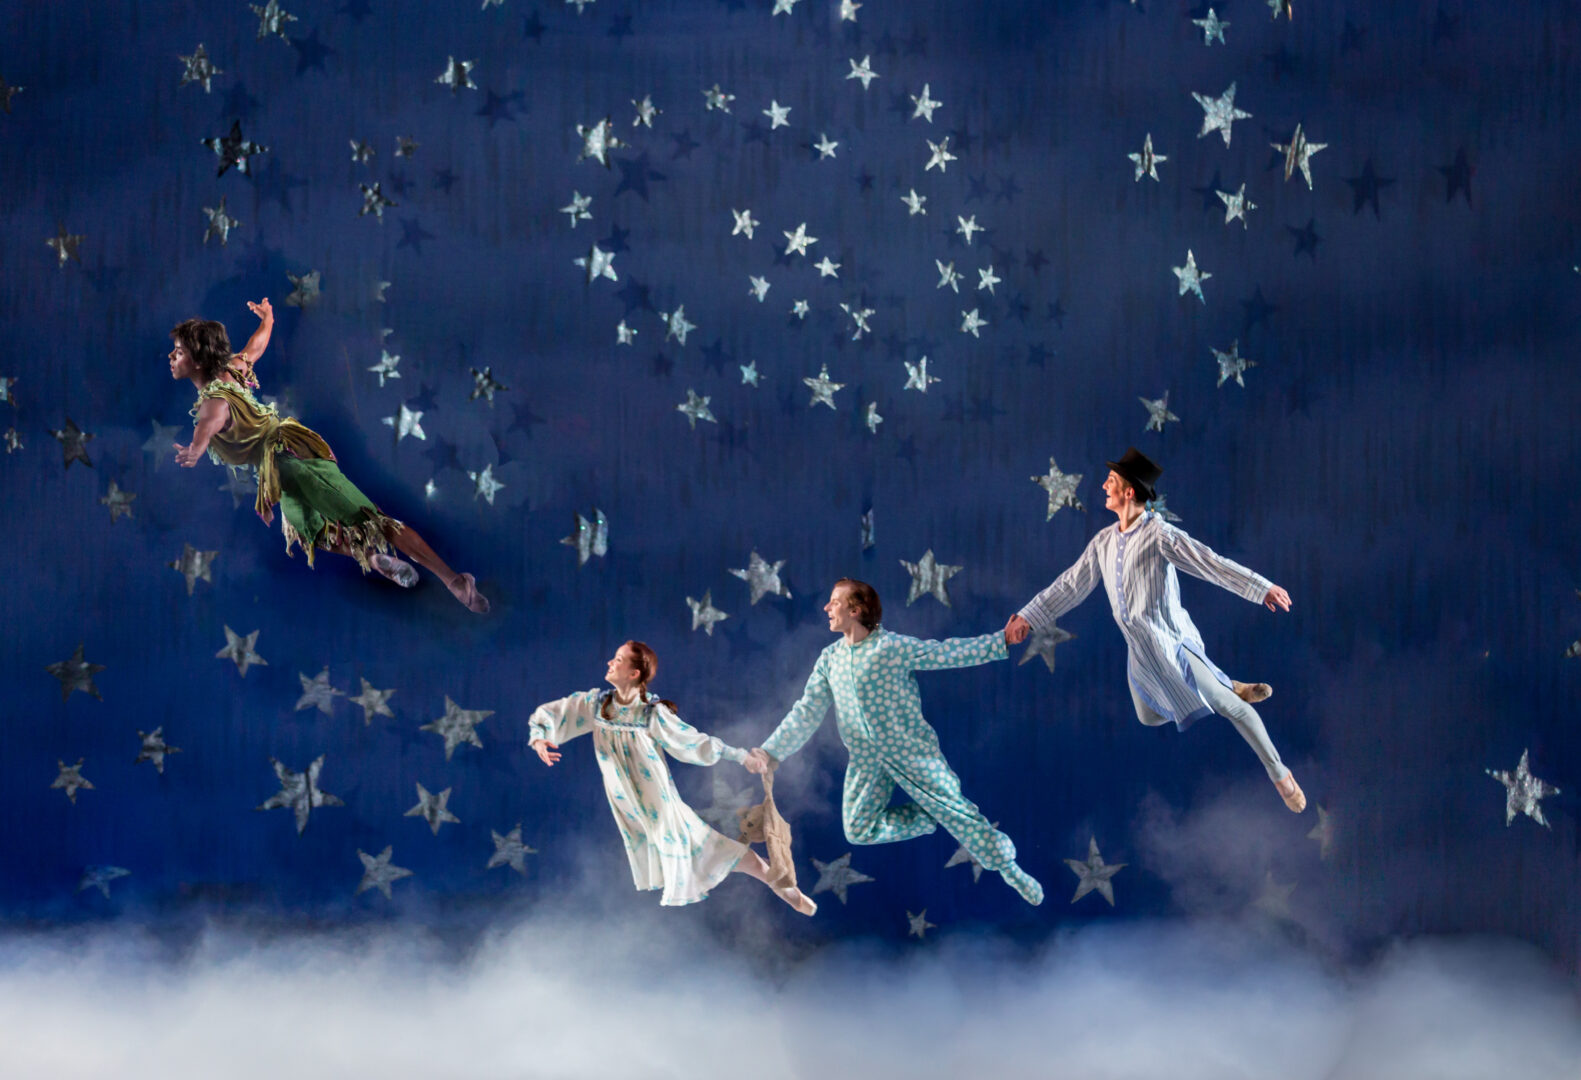 Peter Pan, a Nashville, TN event at TPAC with the Nashville Ballet.